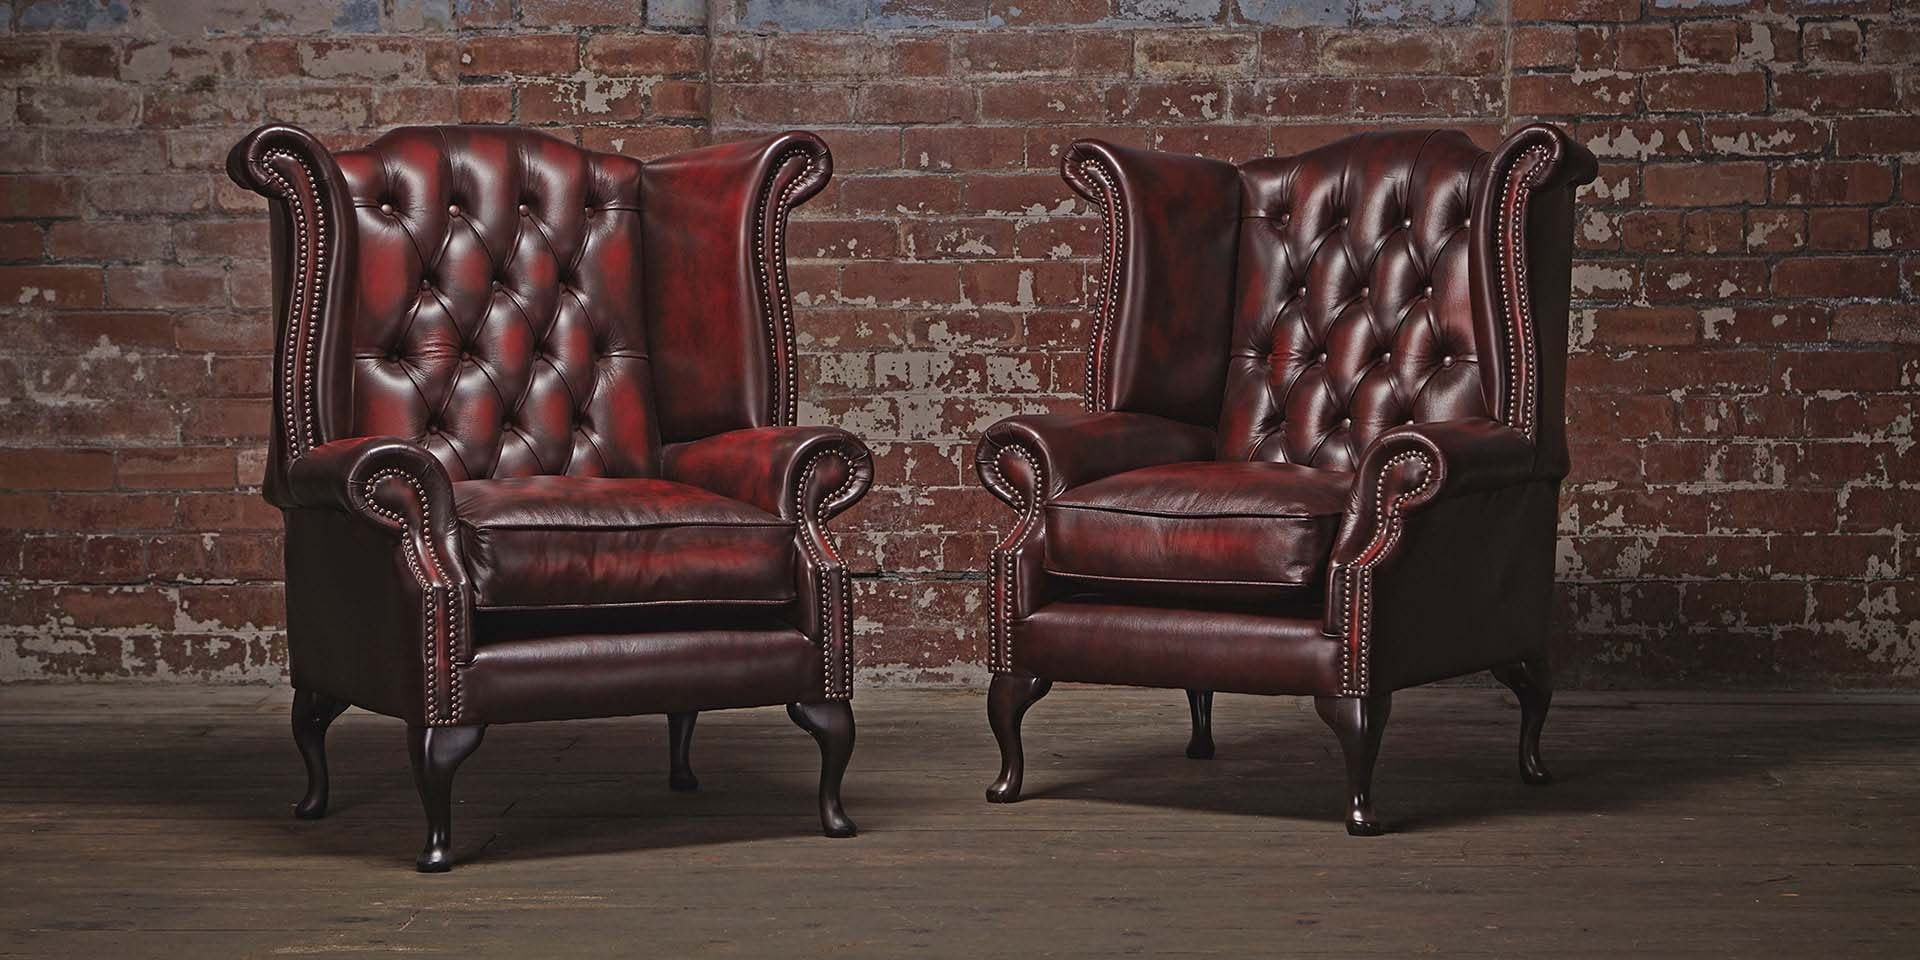 Chesterfields Of England The Original Chesterfield Company With Chesterfield Sofa And Chairs (Image 7 of 15)